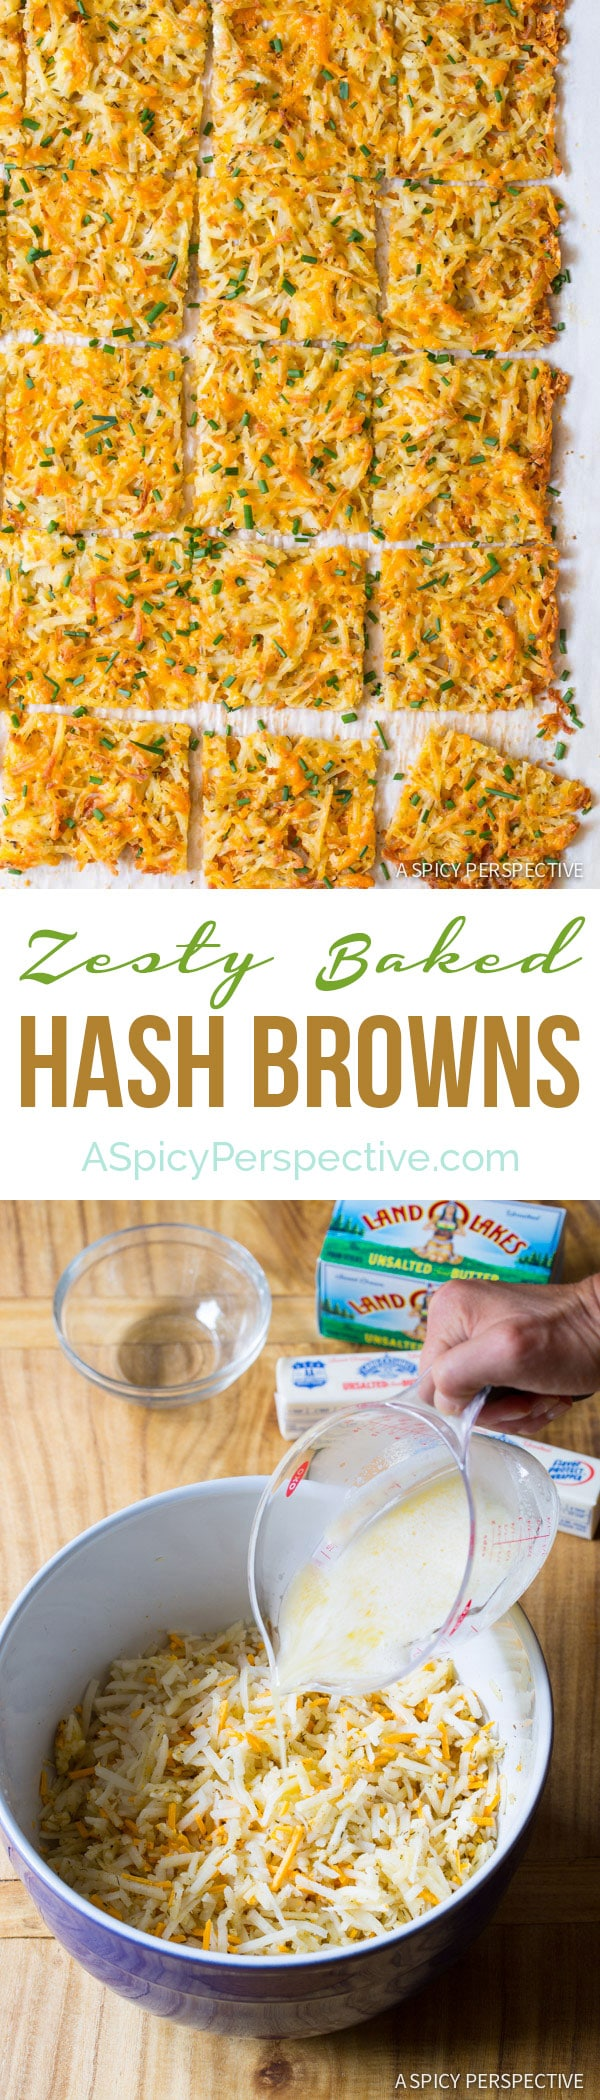 Easy Crispy and Zesty Baked Hash Brown Recipe on ASpicyPerspective.com #breakfast #potatoes